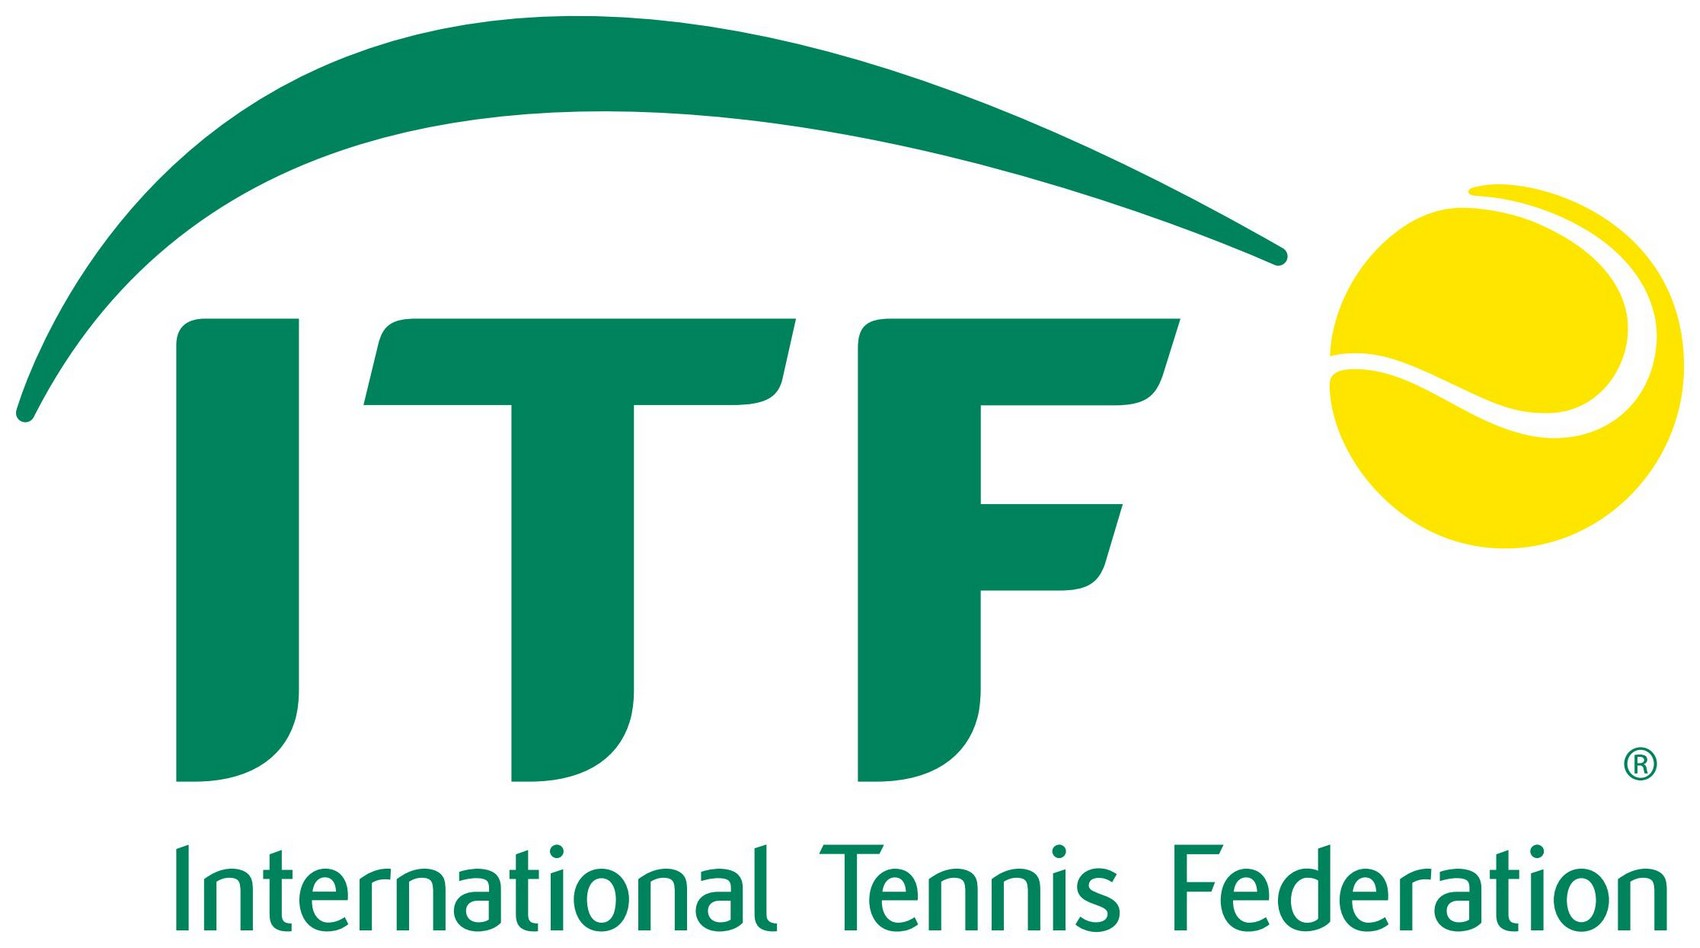 international tennis federation logo